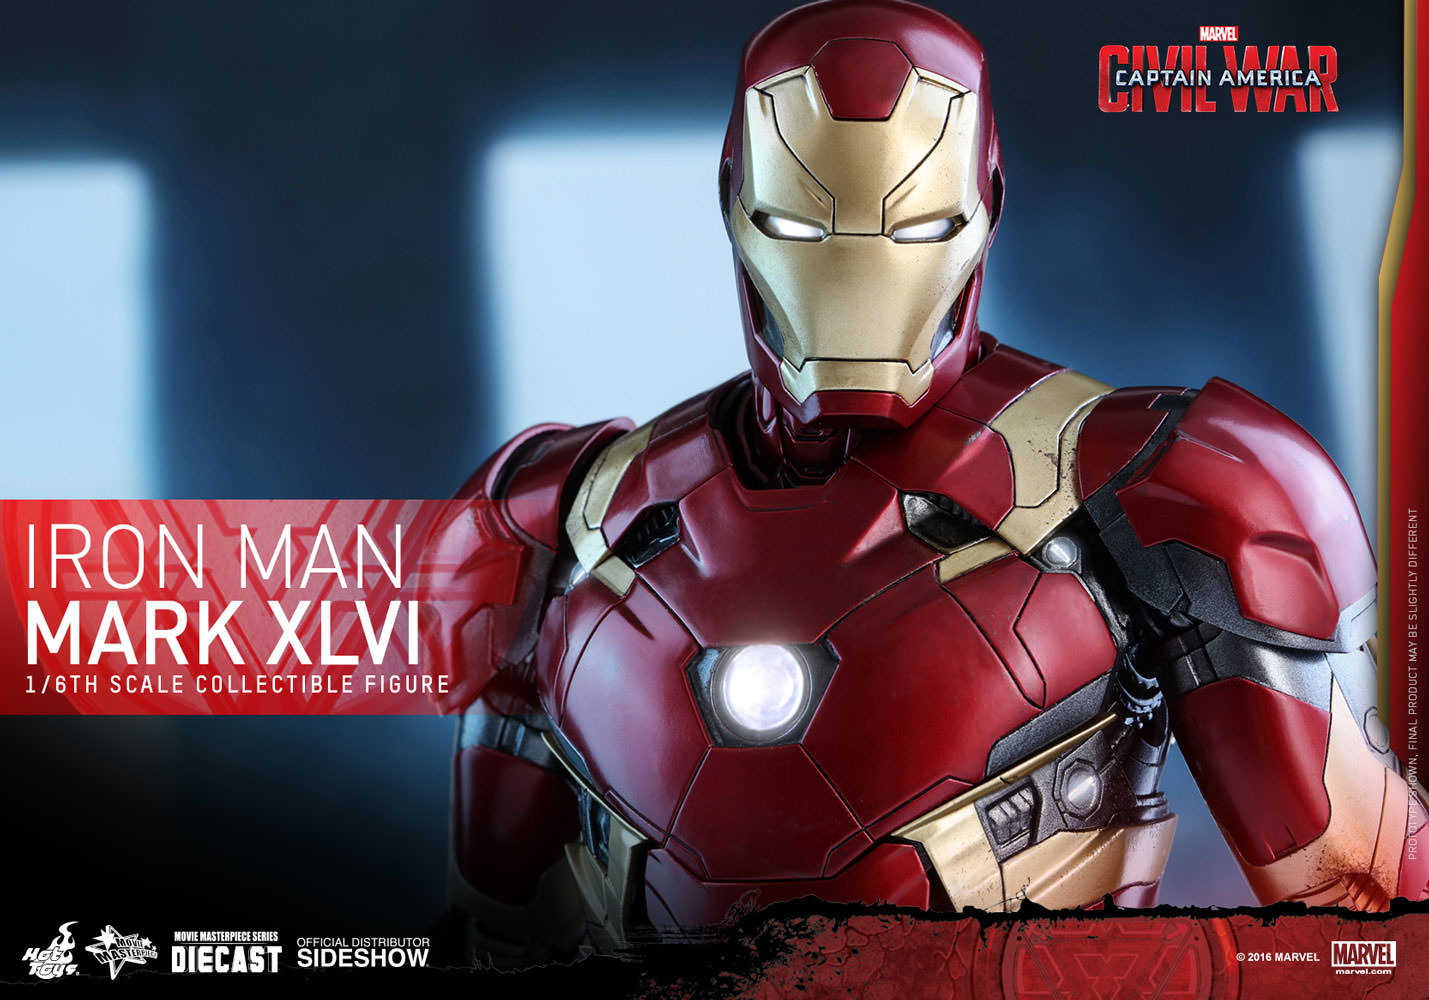 Iron Man Mark XLVI MK46 Sixth Scale Figure by Hot Toys